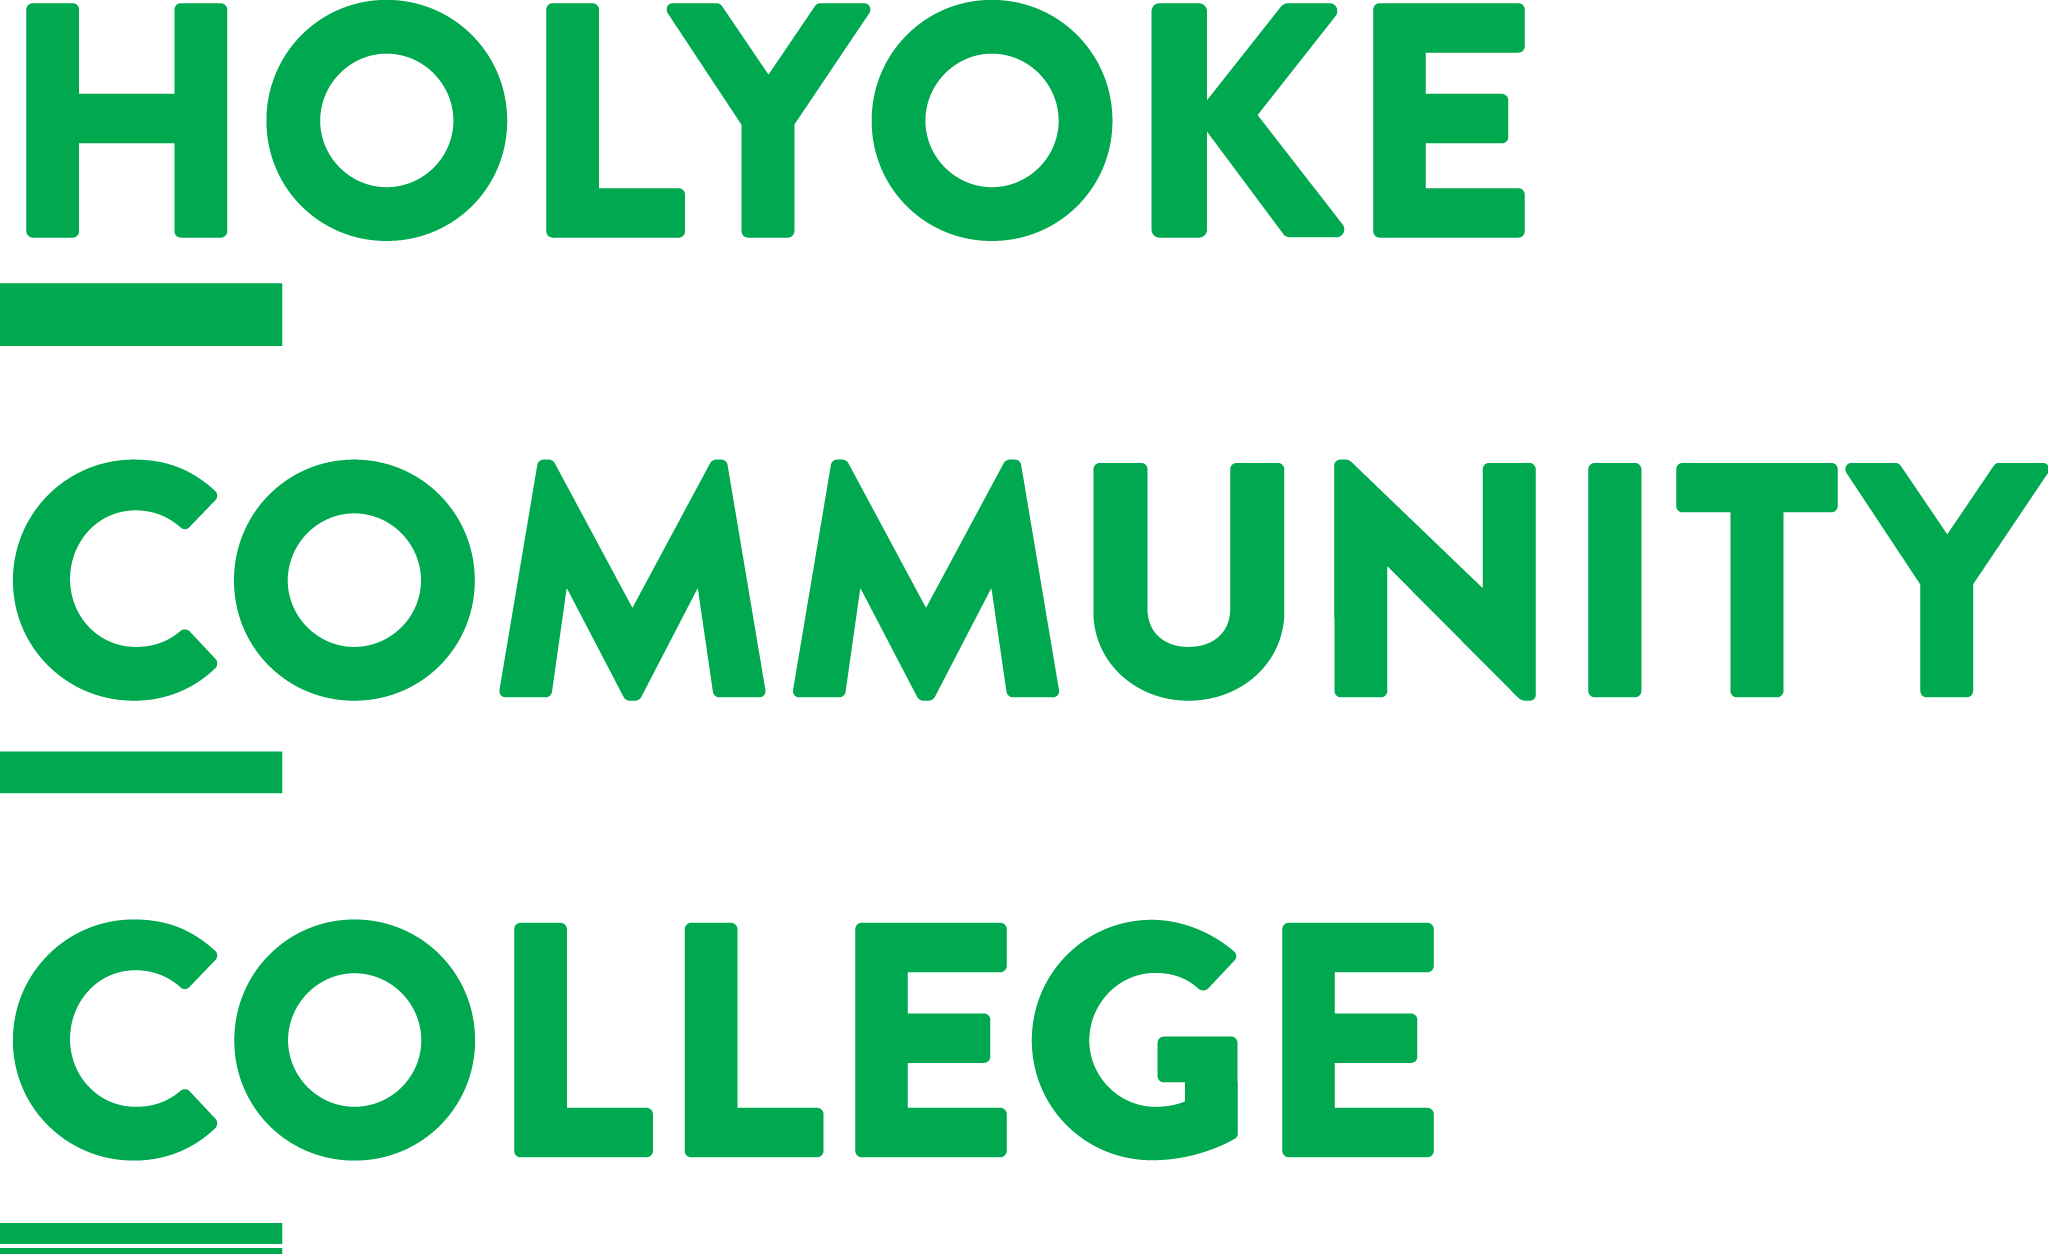 Final Exam Schedule | Holyoke Community College-Final Exam Schedule-www.hcc.edu